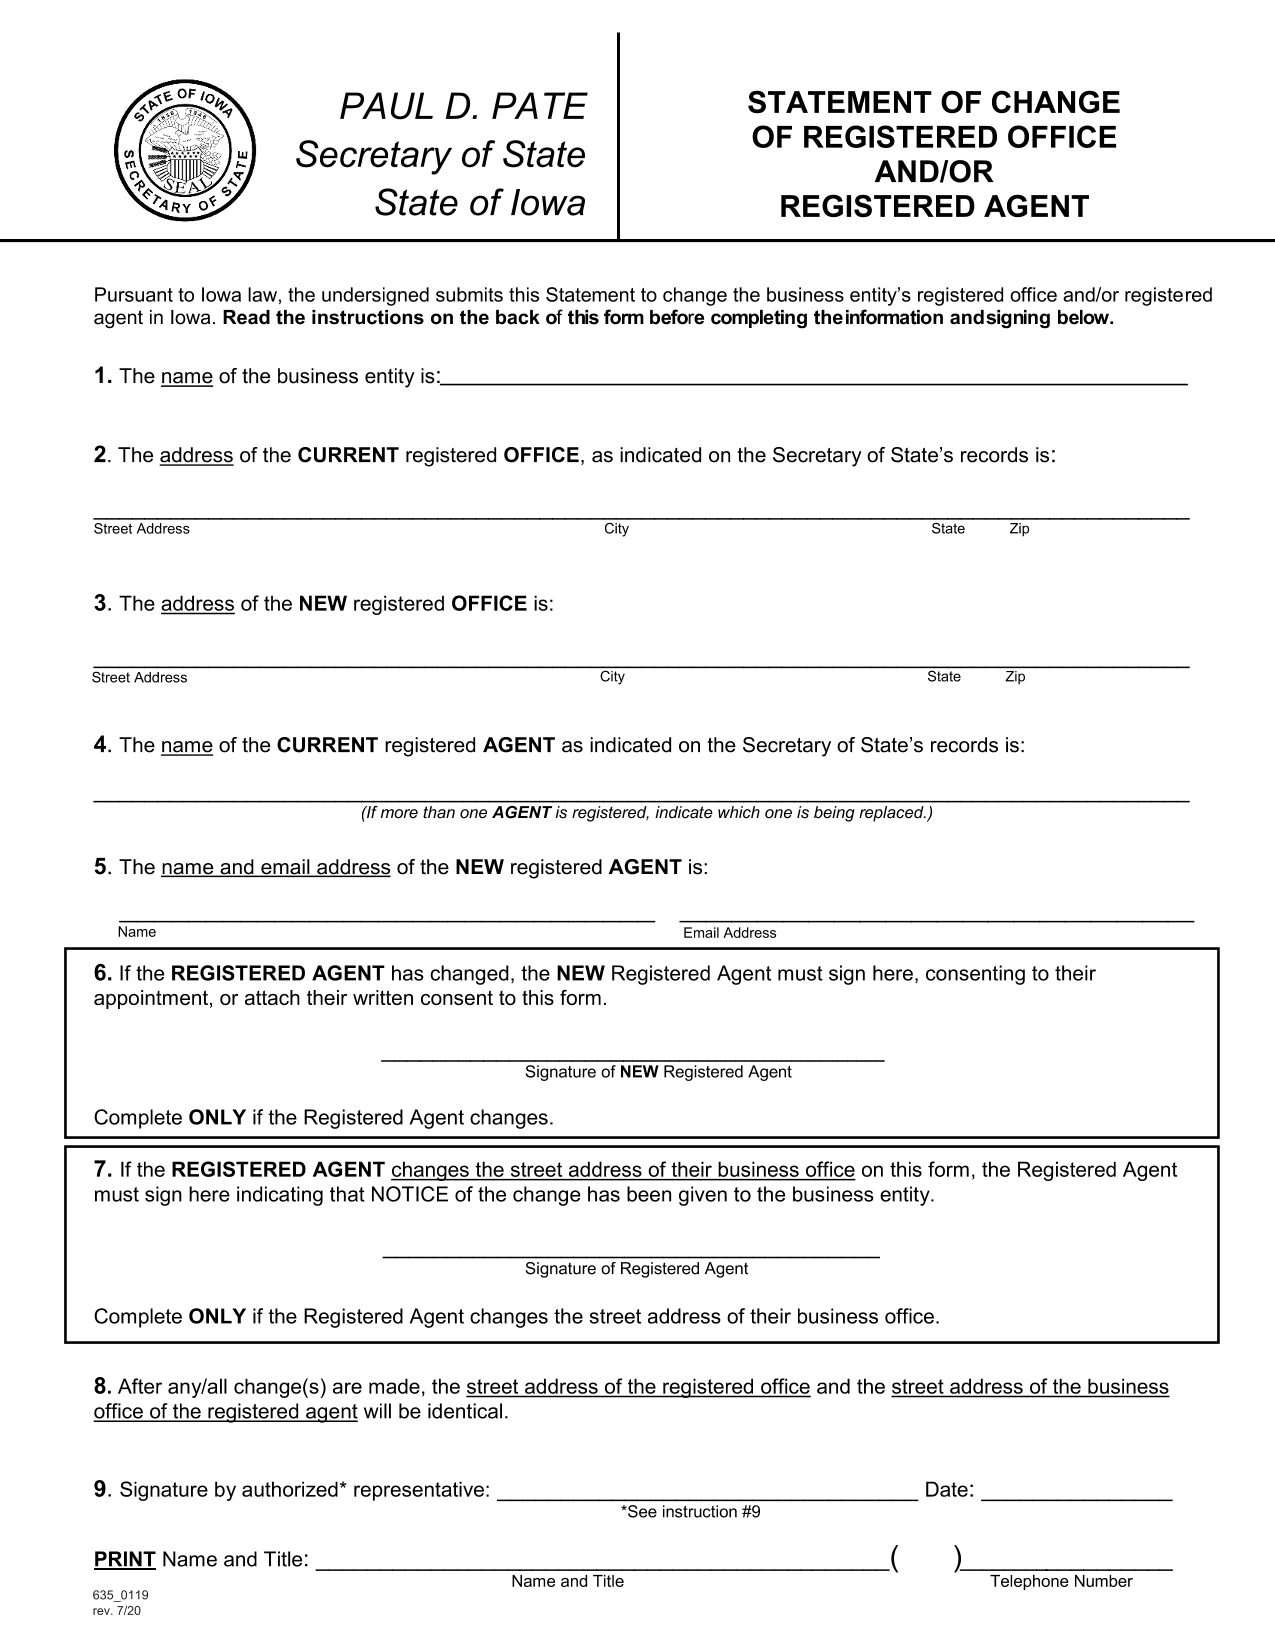 iowa-change-of-registered-agent-